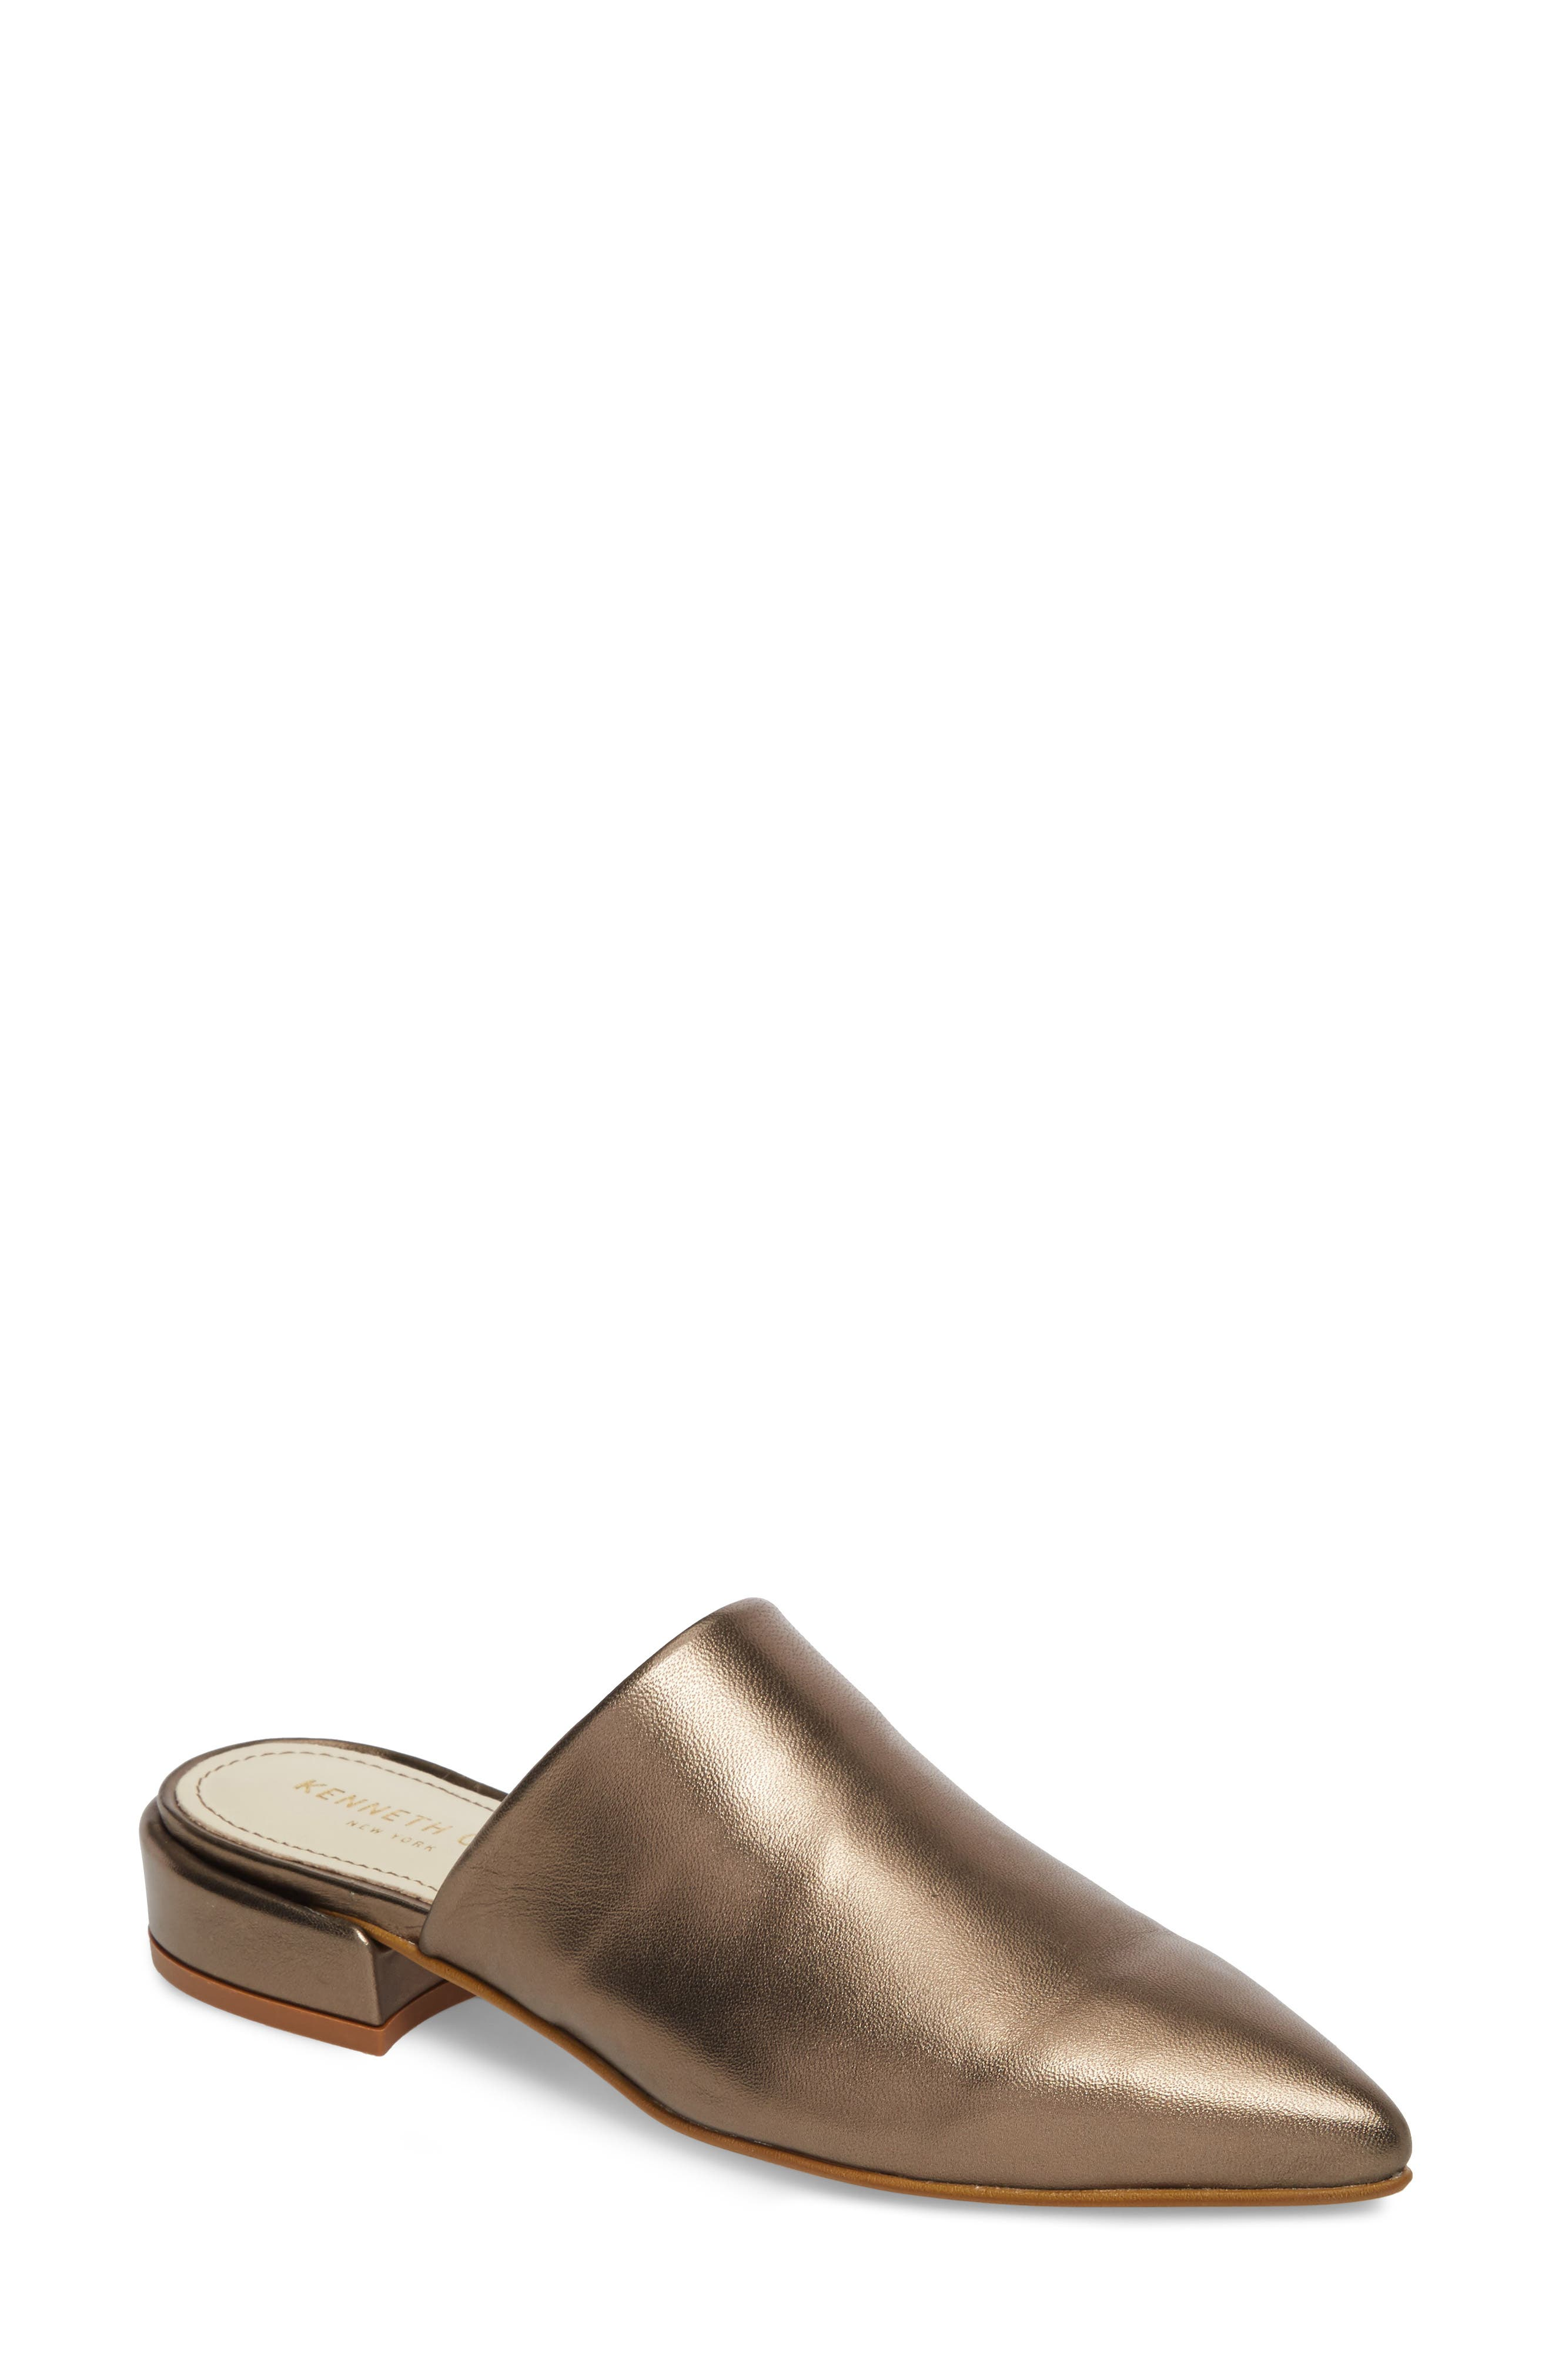 Alternate Image 1 Selected - Kenneth Cole New York Aisley Mule (Women)